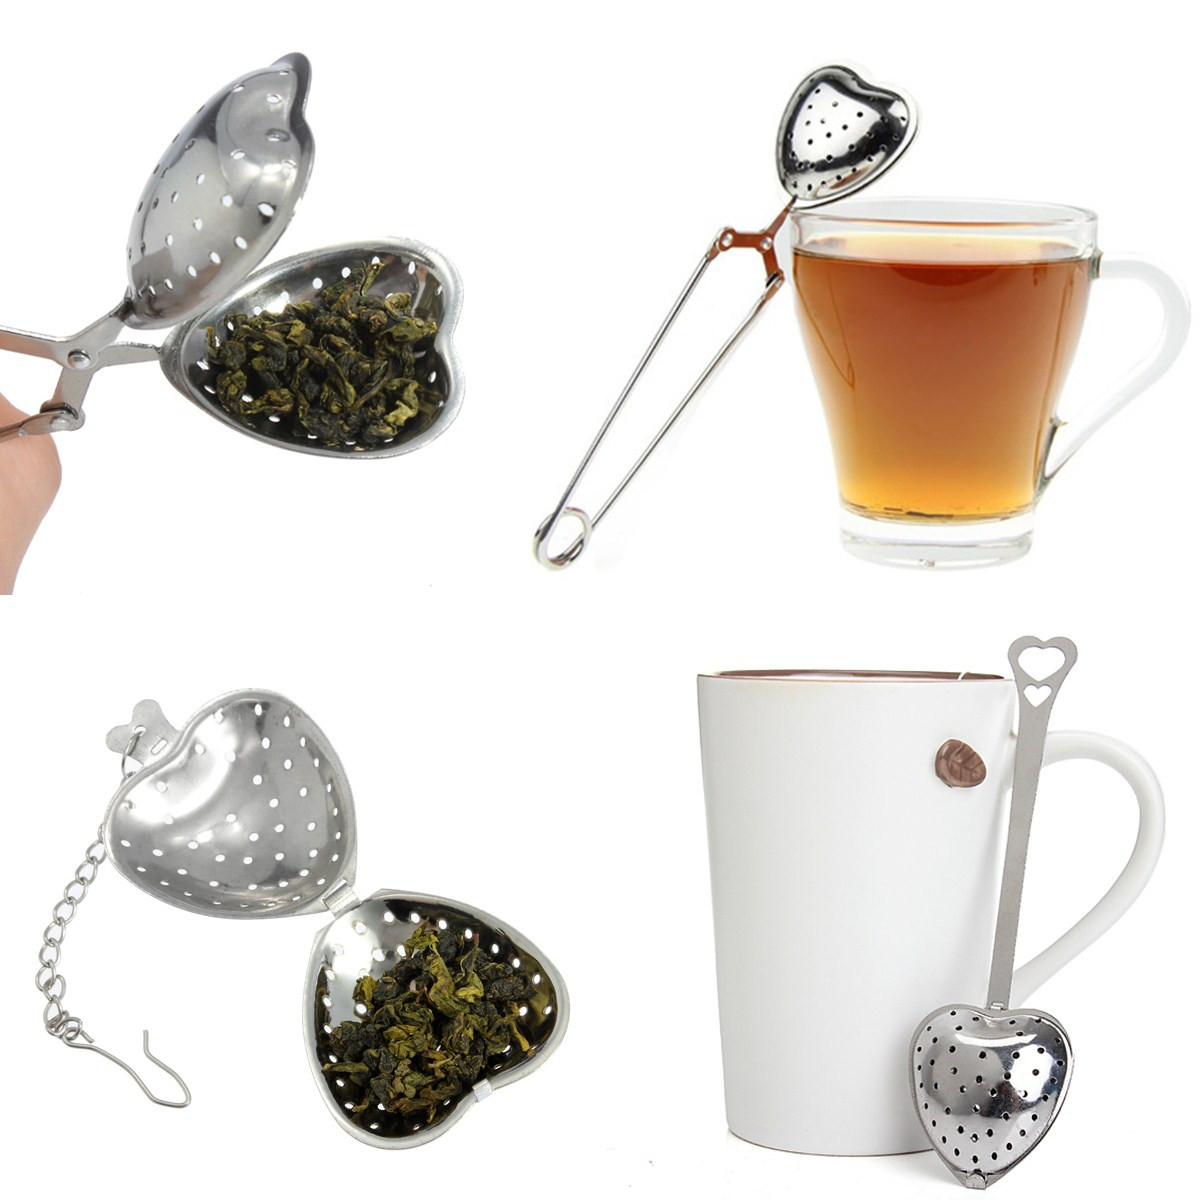 boule th inox coeur passe infuseur filtre passoire cuill re pince tea infuser ebay. Black Bedroom Furniture Sets. Home Design Ideas